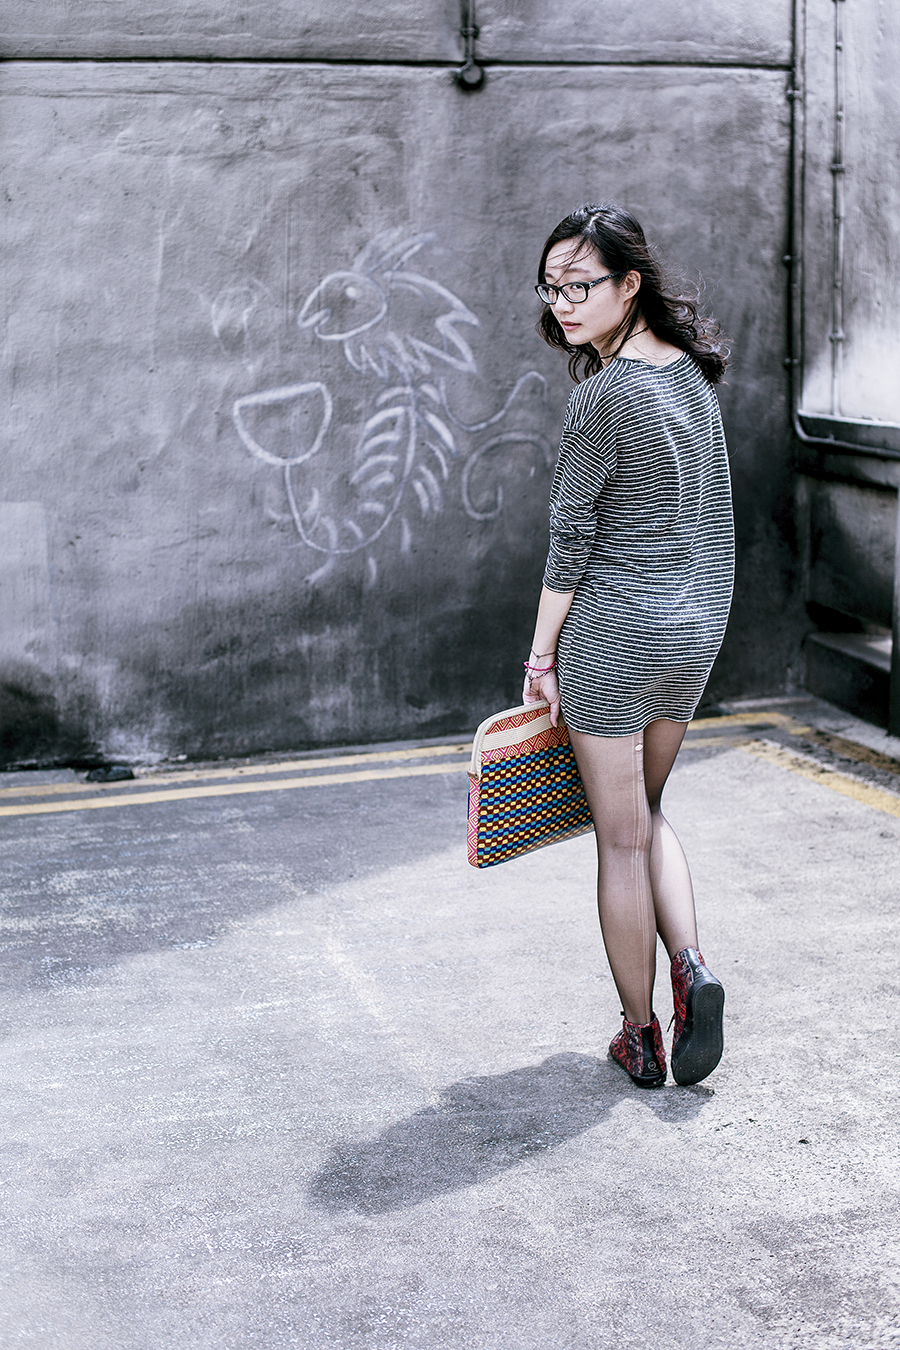 Zara striped tunic, DKNY sheer tights, The Little Fox necklace from Etsy, Fossil tribal design laptop sleeve, Gap black frame glasses, Alexander McQueen x Puma high top sneakers.